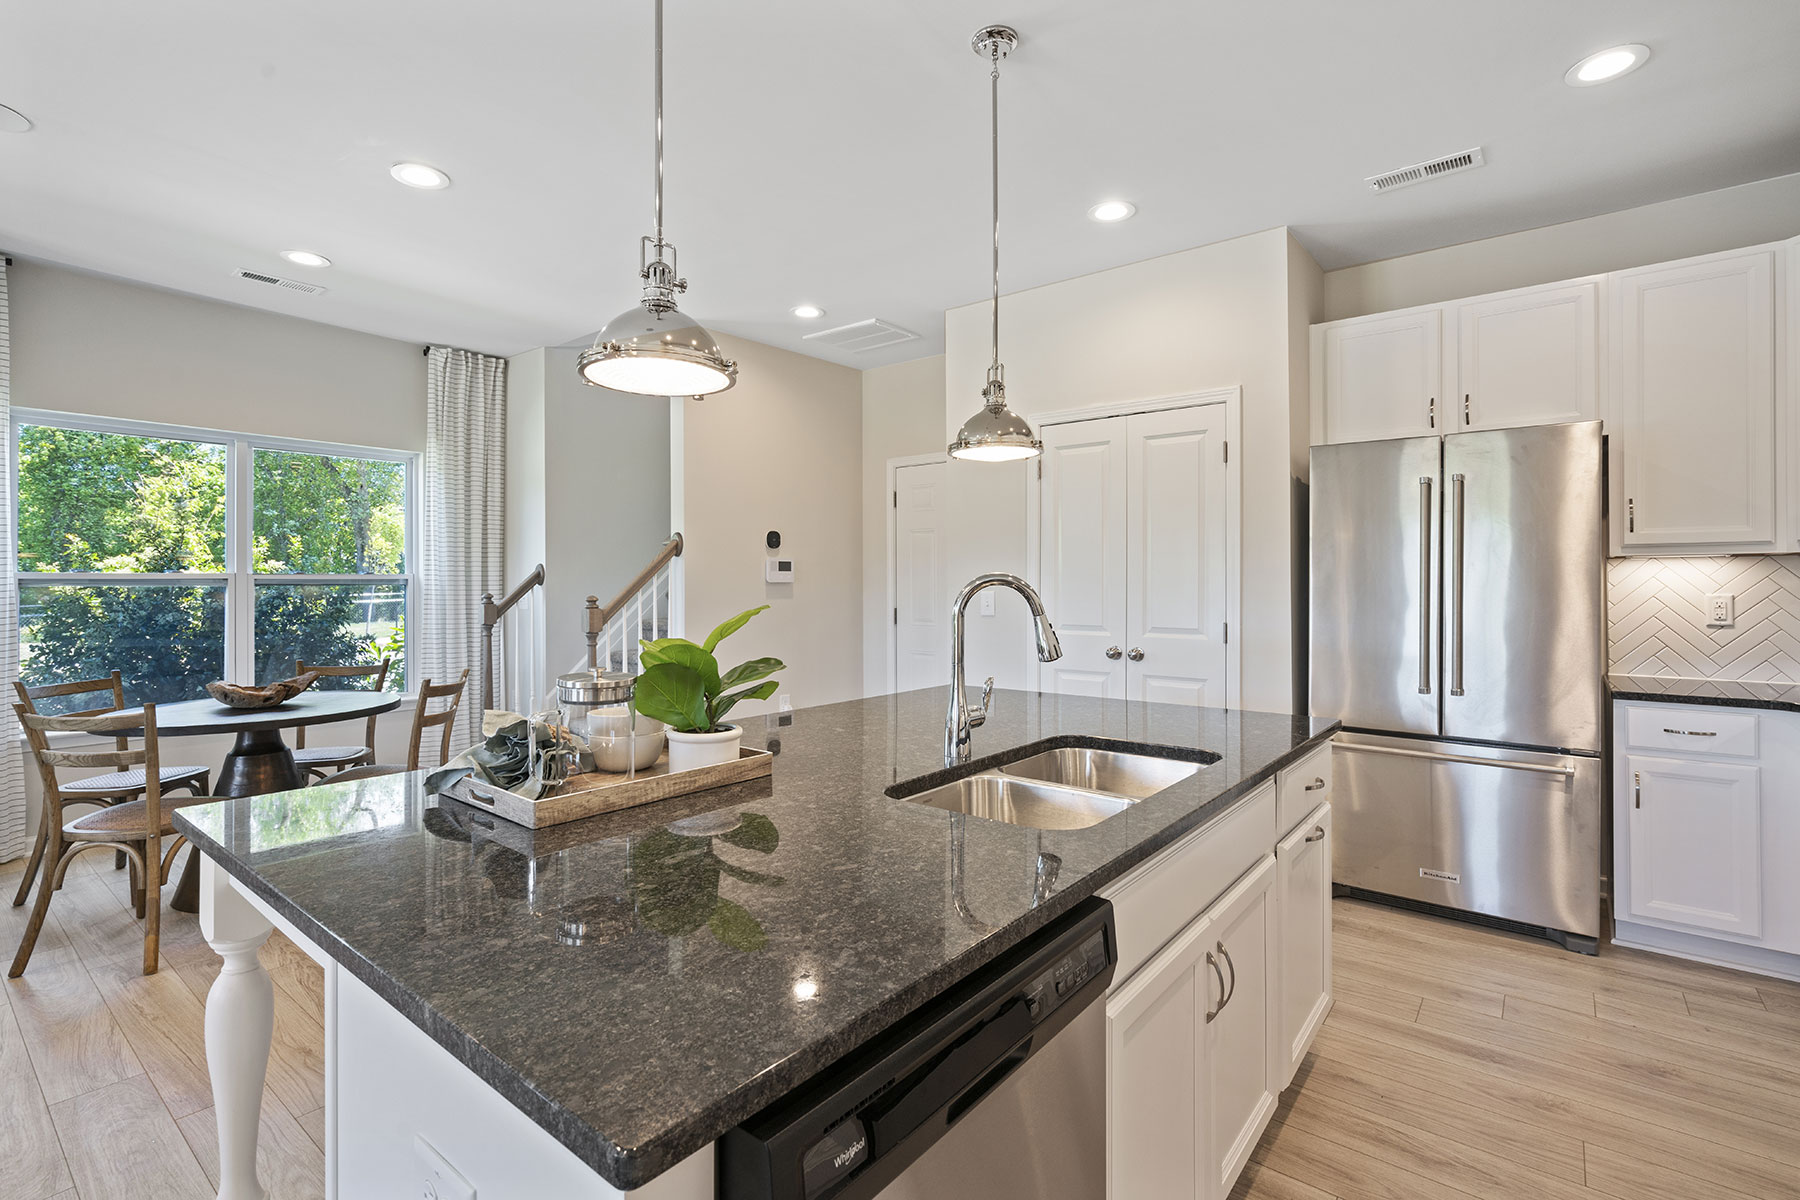 Ansel Plan rdu_the-ansel_btc_kitchen6 at Bengal Townes in Fuquay-Varina North Carolina by Mattamy Homes